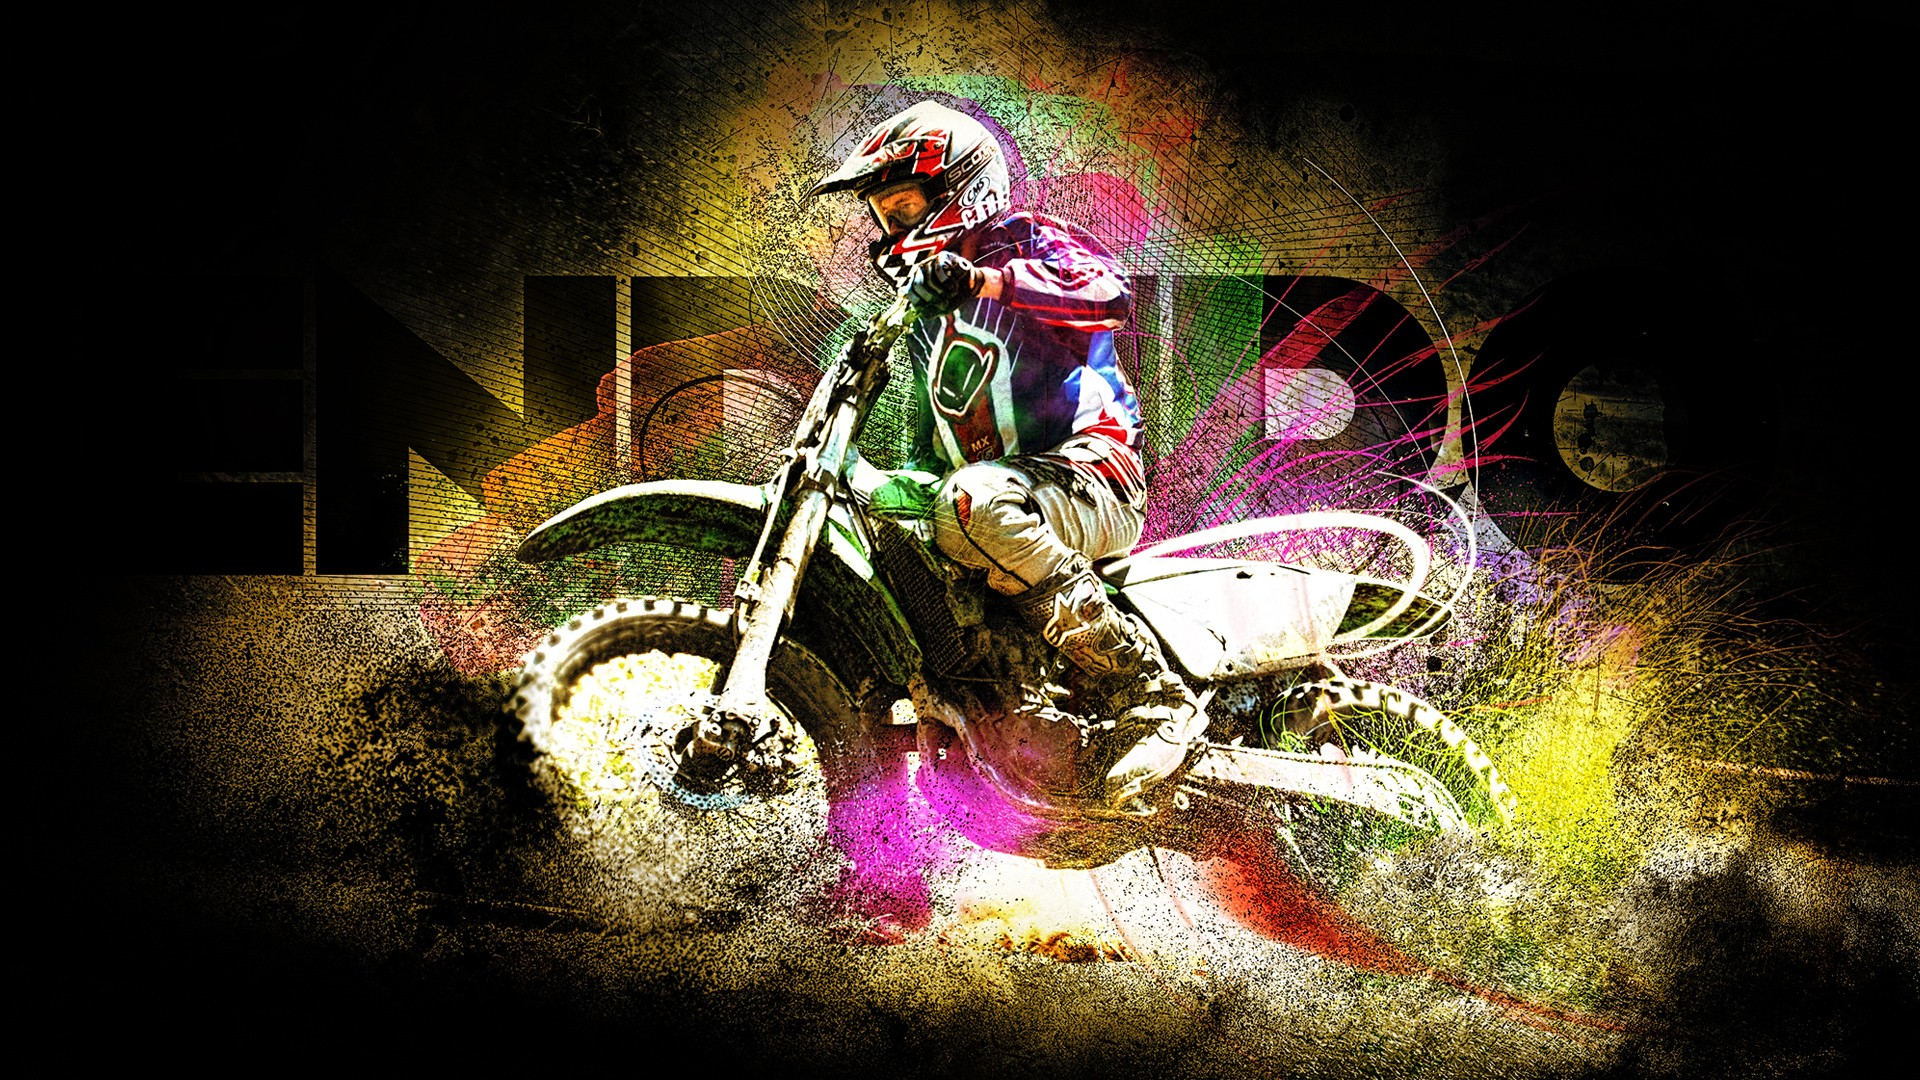 Free Cute Wallpaper For Iphone 4 Enduro Racing Wallpapers Hd Wallpapers Id 10422